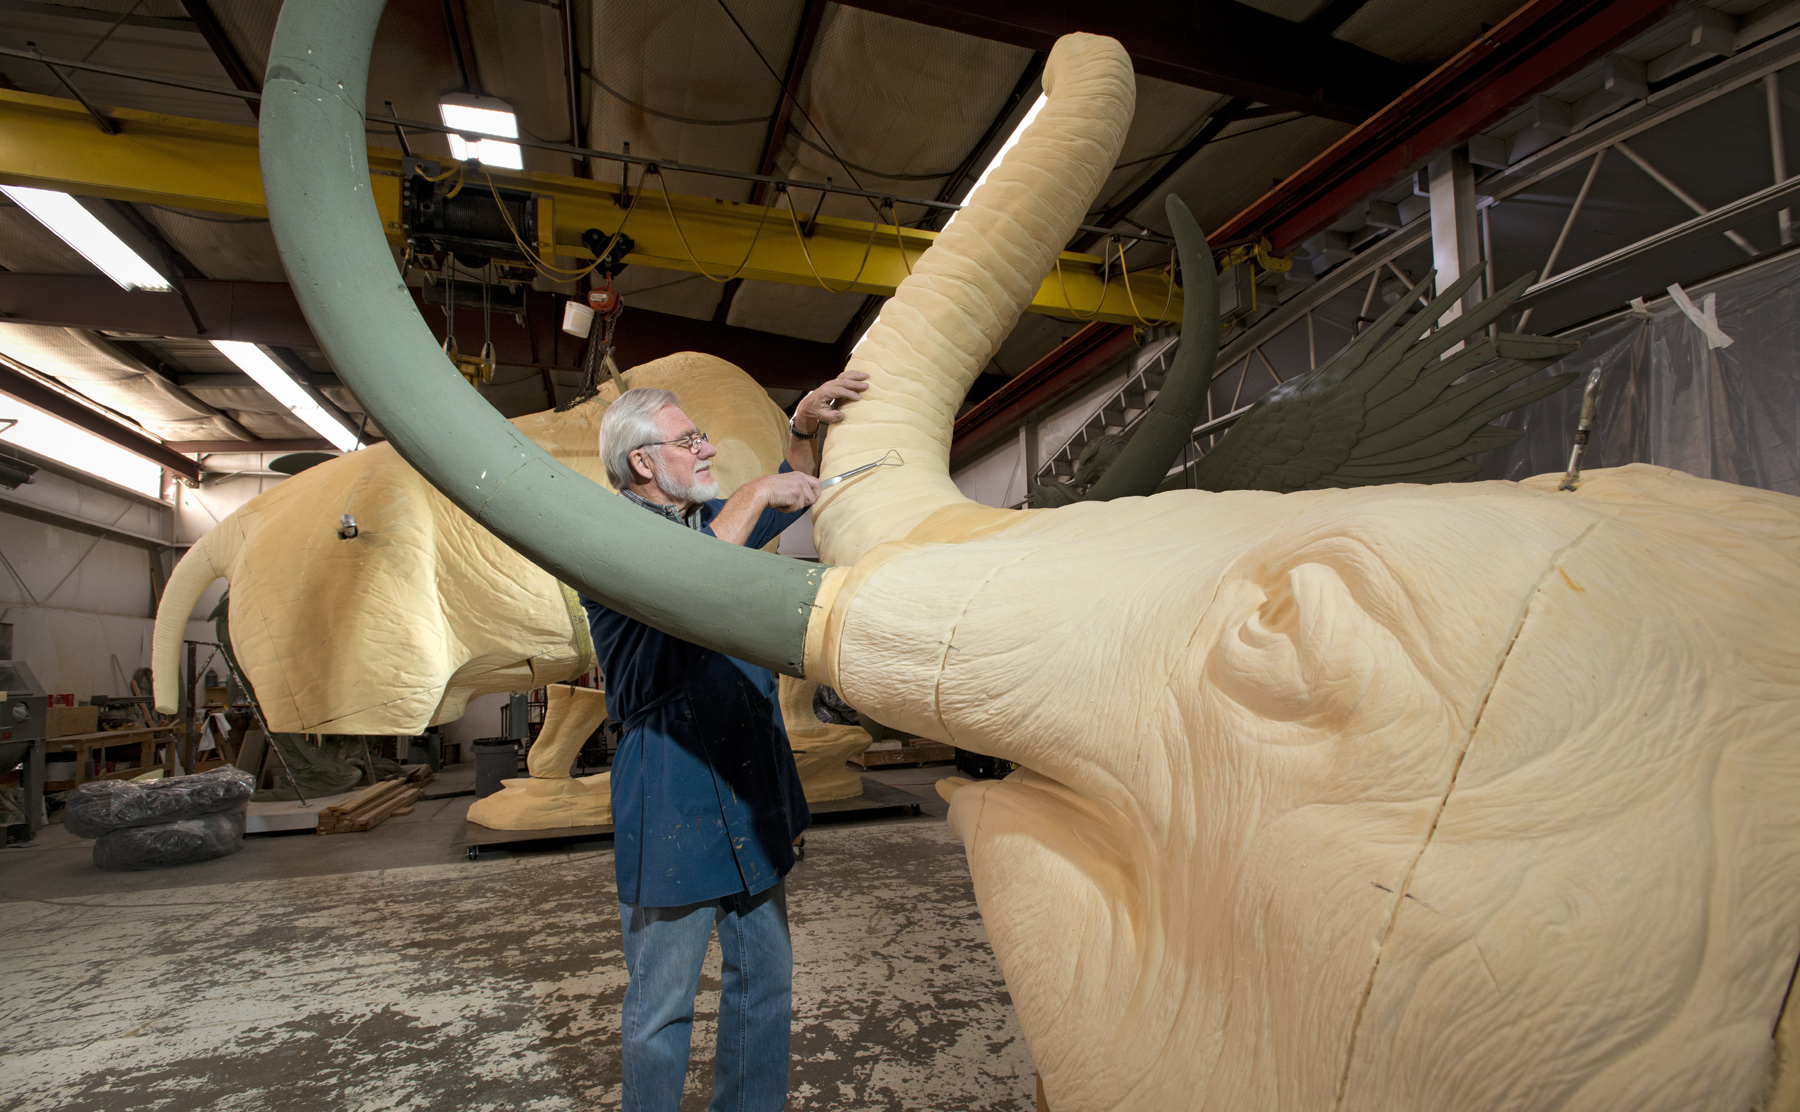 Photo: 'Snowmastodon' sculpture by Kent Ullberg at DMNS